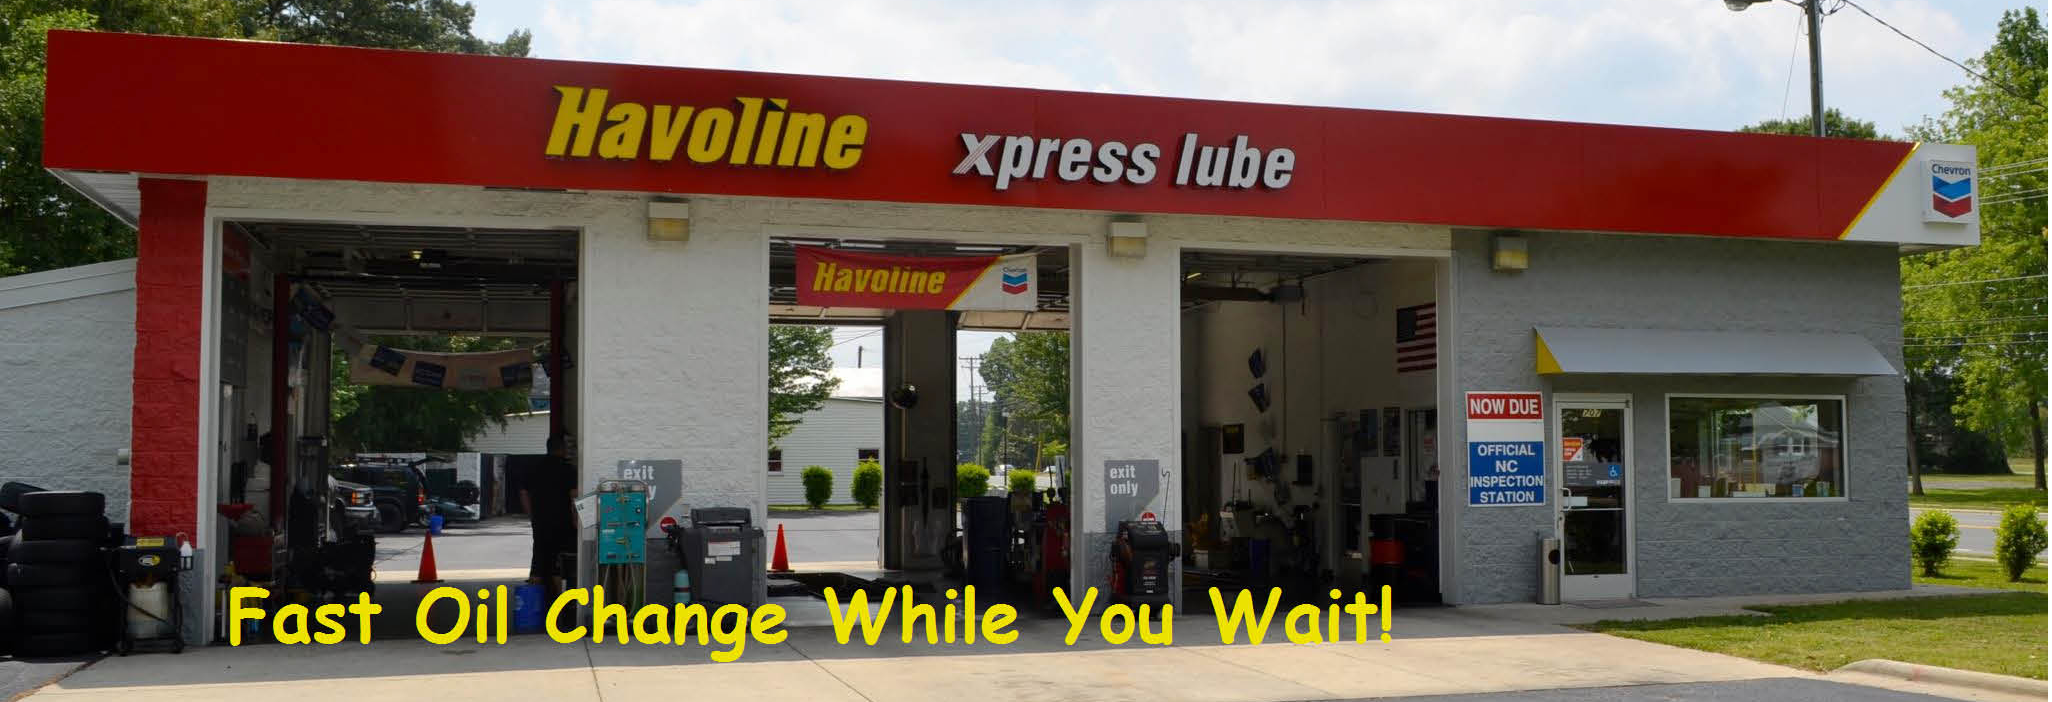 Havoline Xpress Lube in Charlotte, NC banner